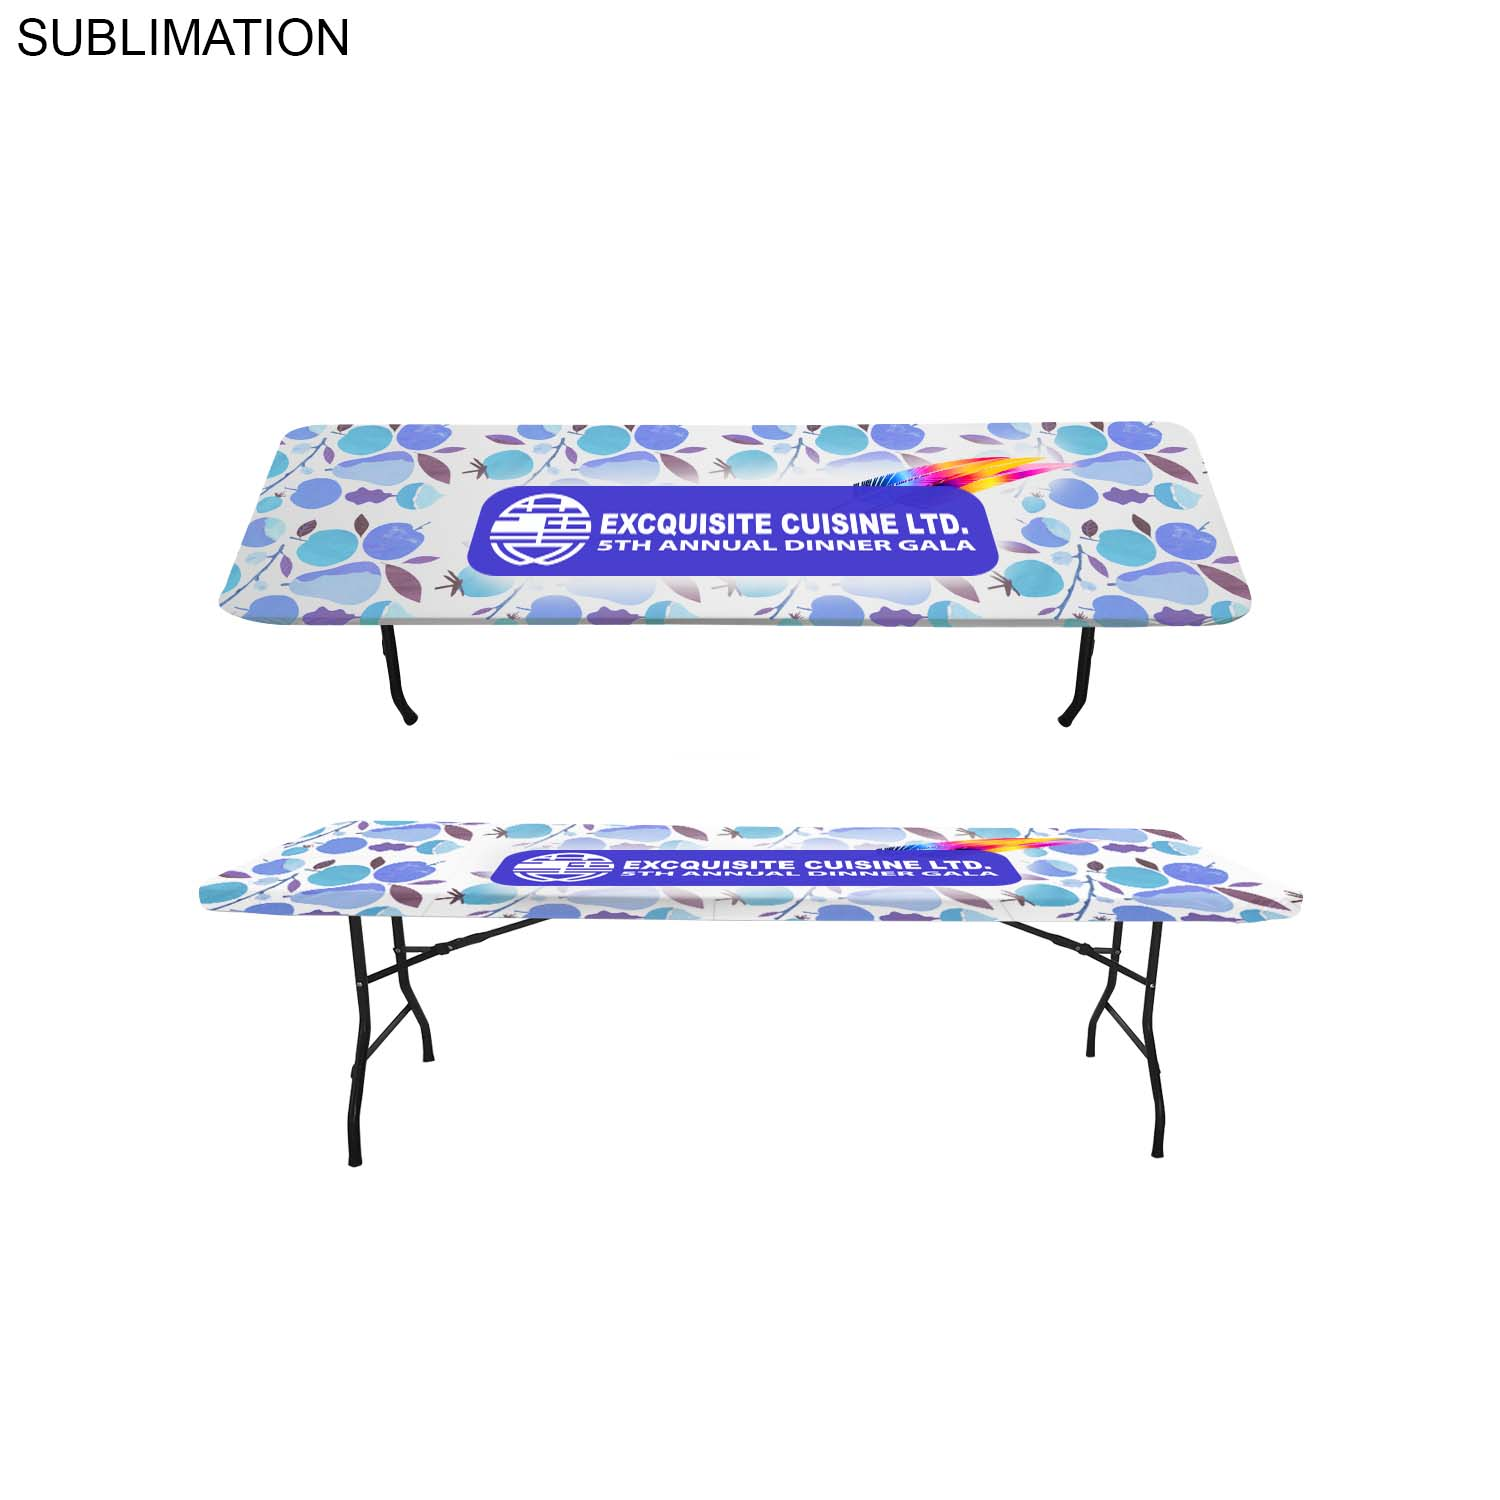 8' Stretch Fit Table Topper, #SU605, Full Colour Imprint